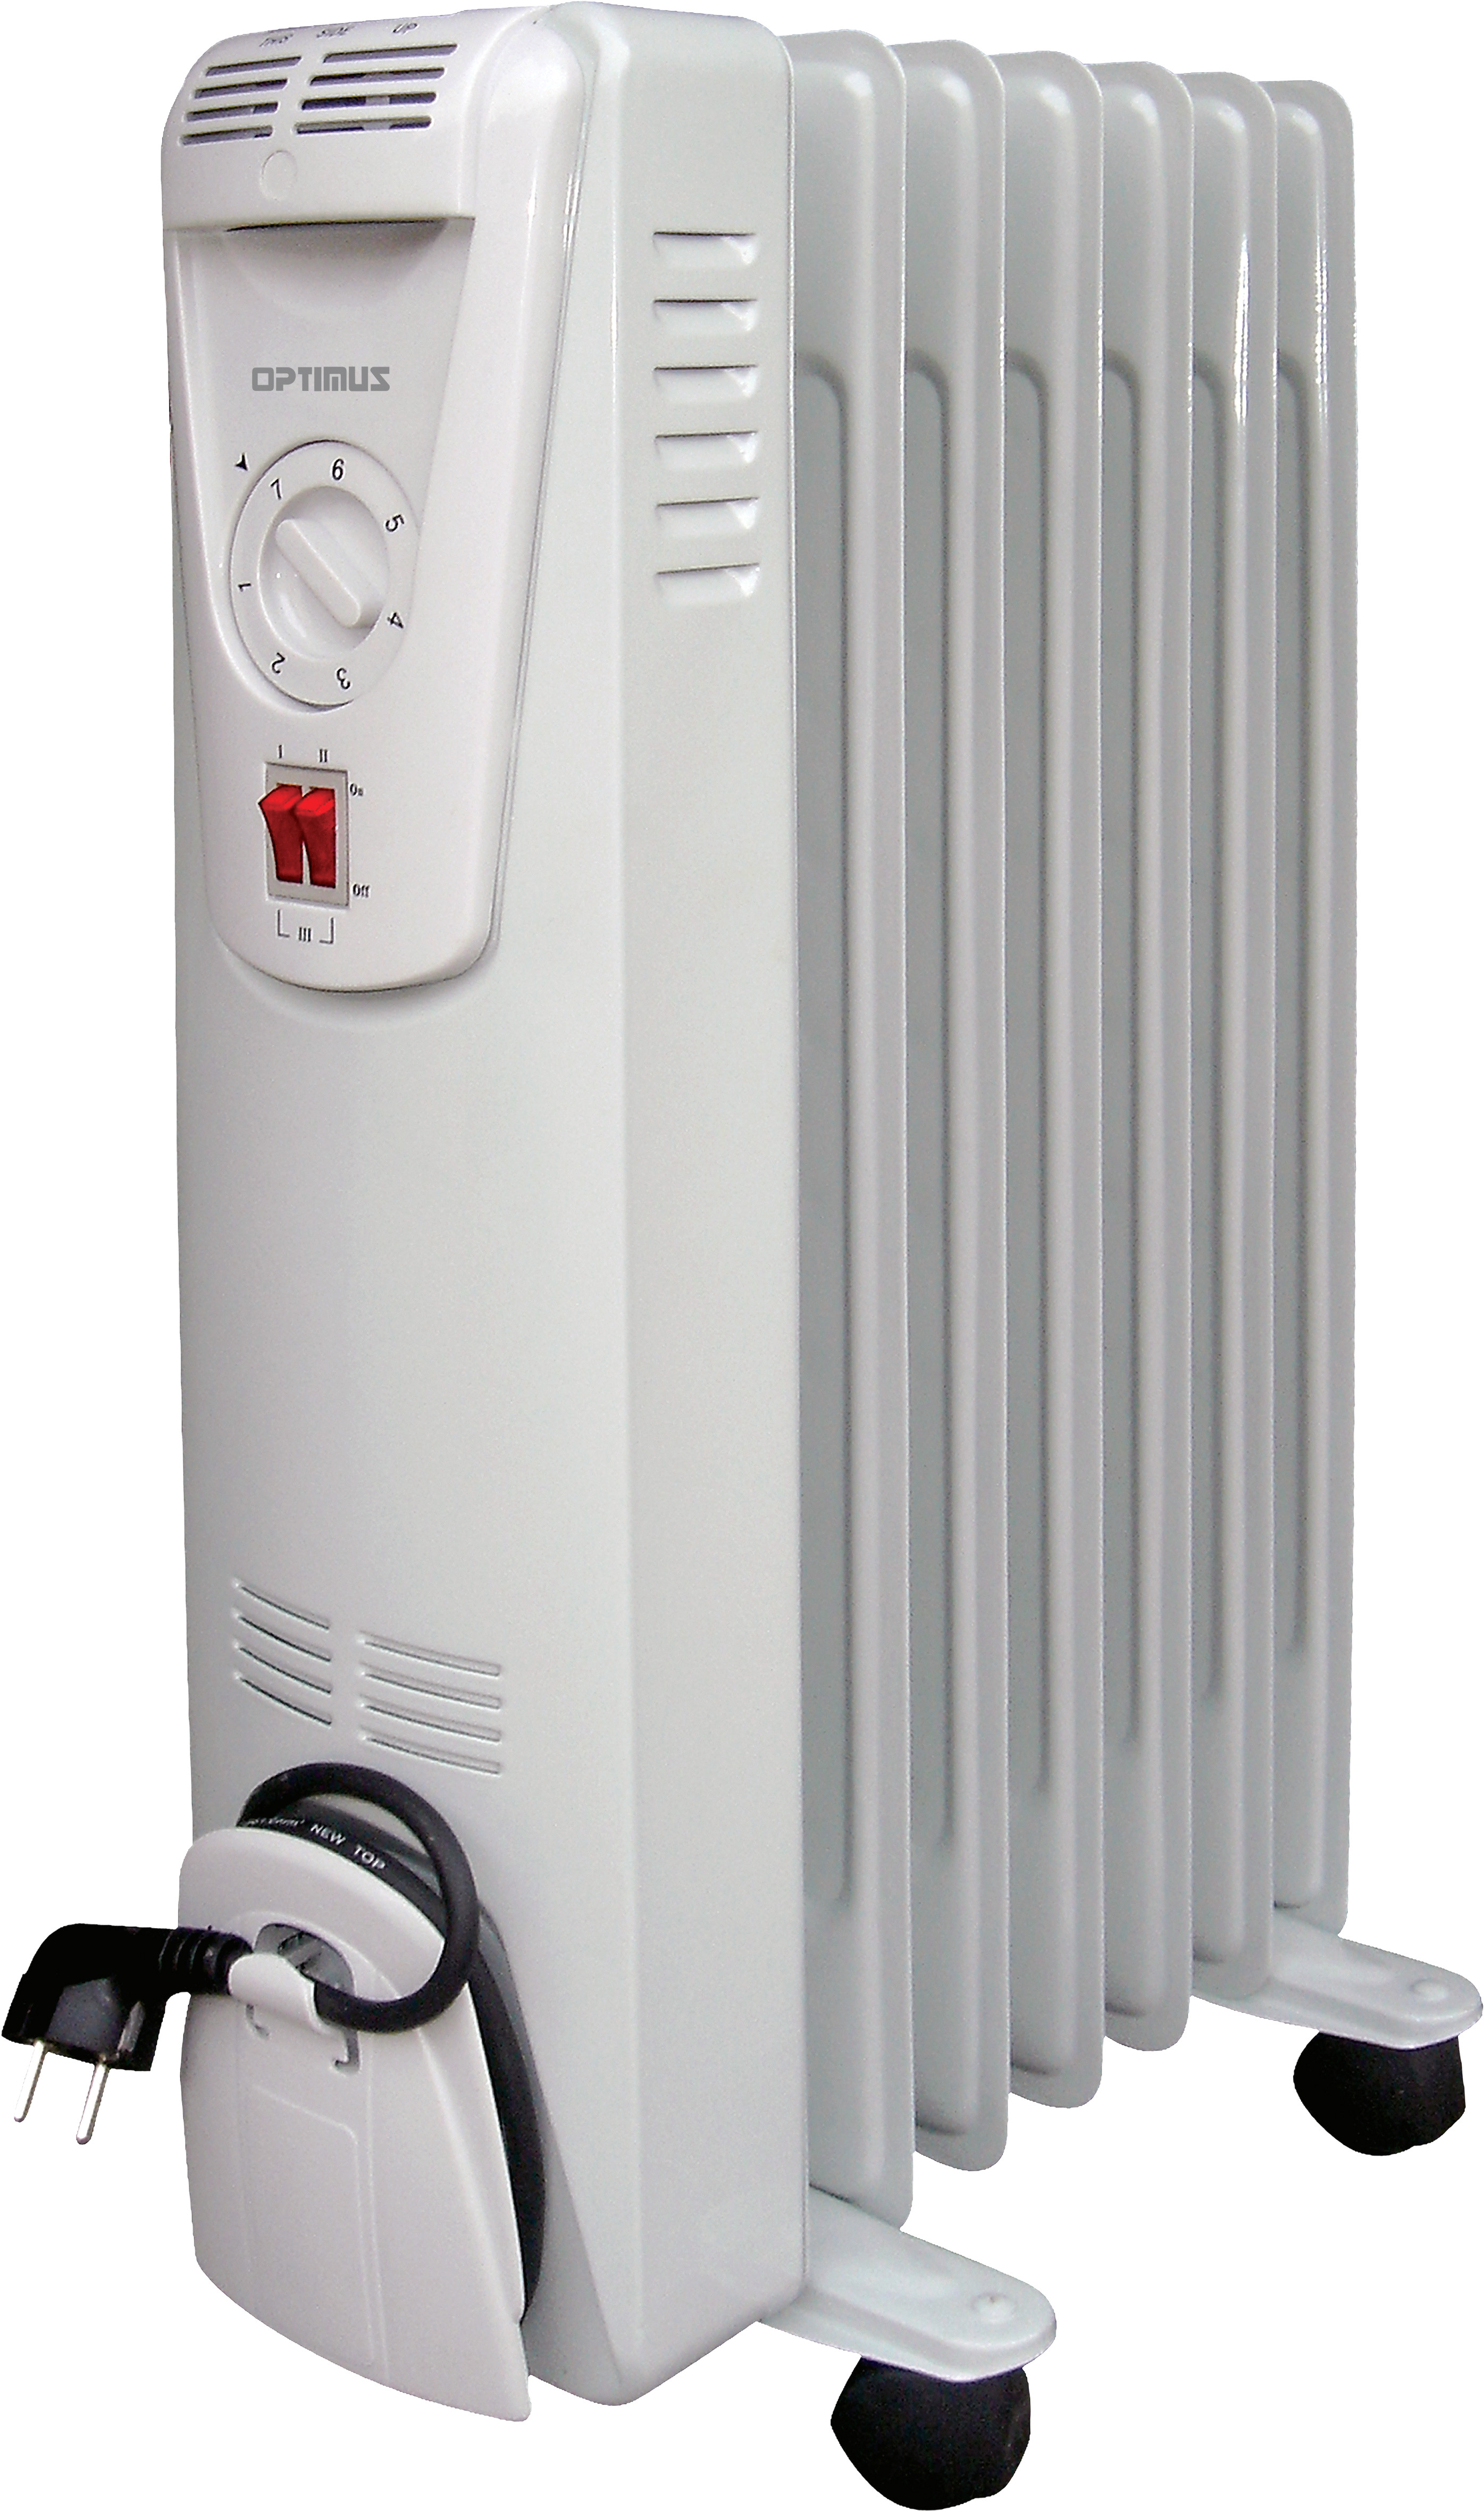 Best Indoor Propane Heaters for Large Rooms | AdinaPorter